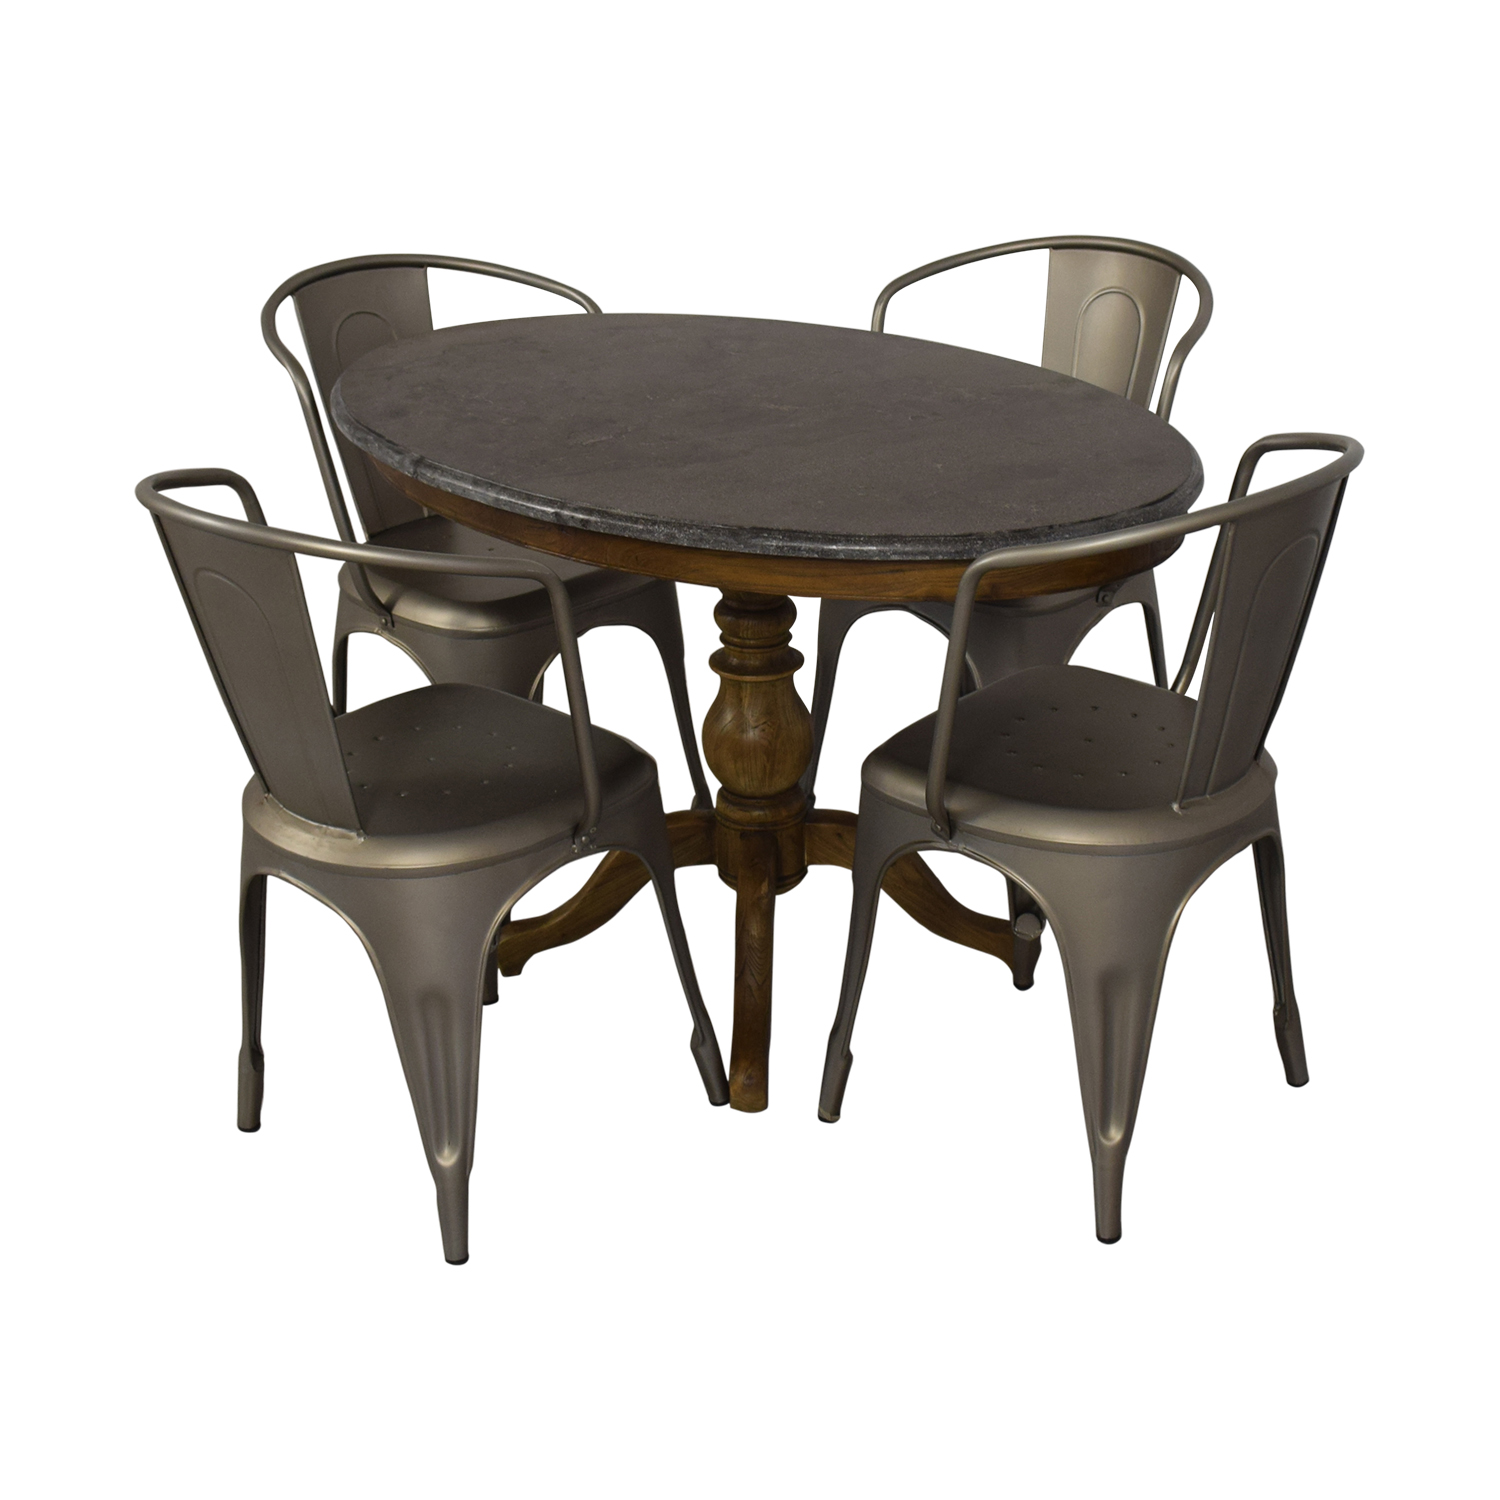 Restoration Hardware Restoration Hardware Bluestone Dining Table And Remy Chairs on sale